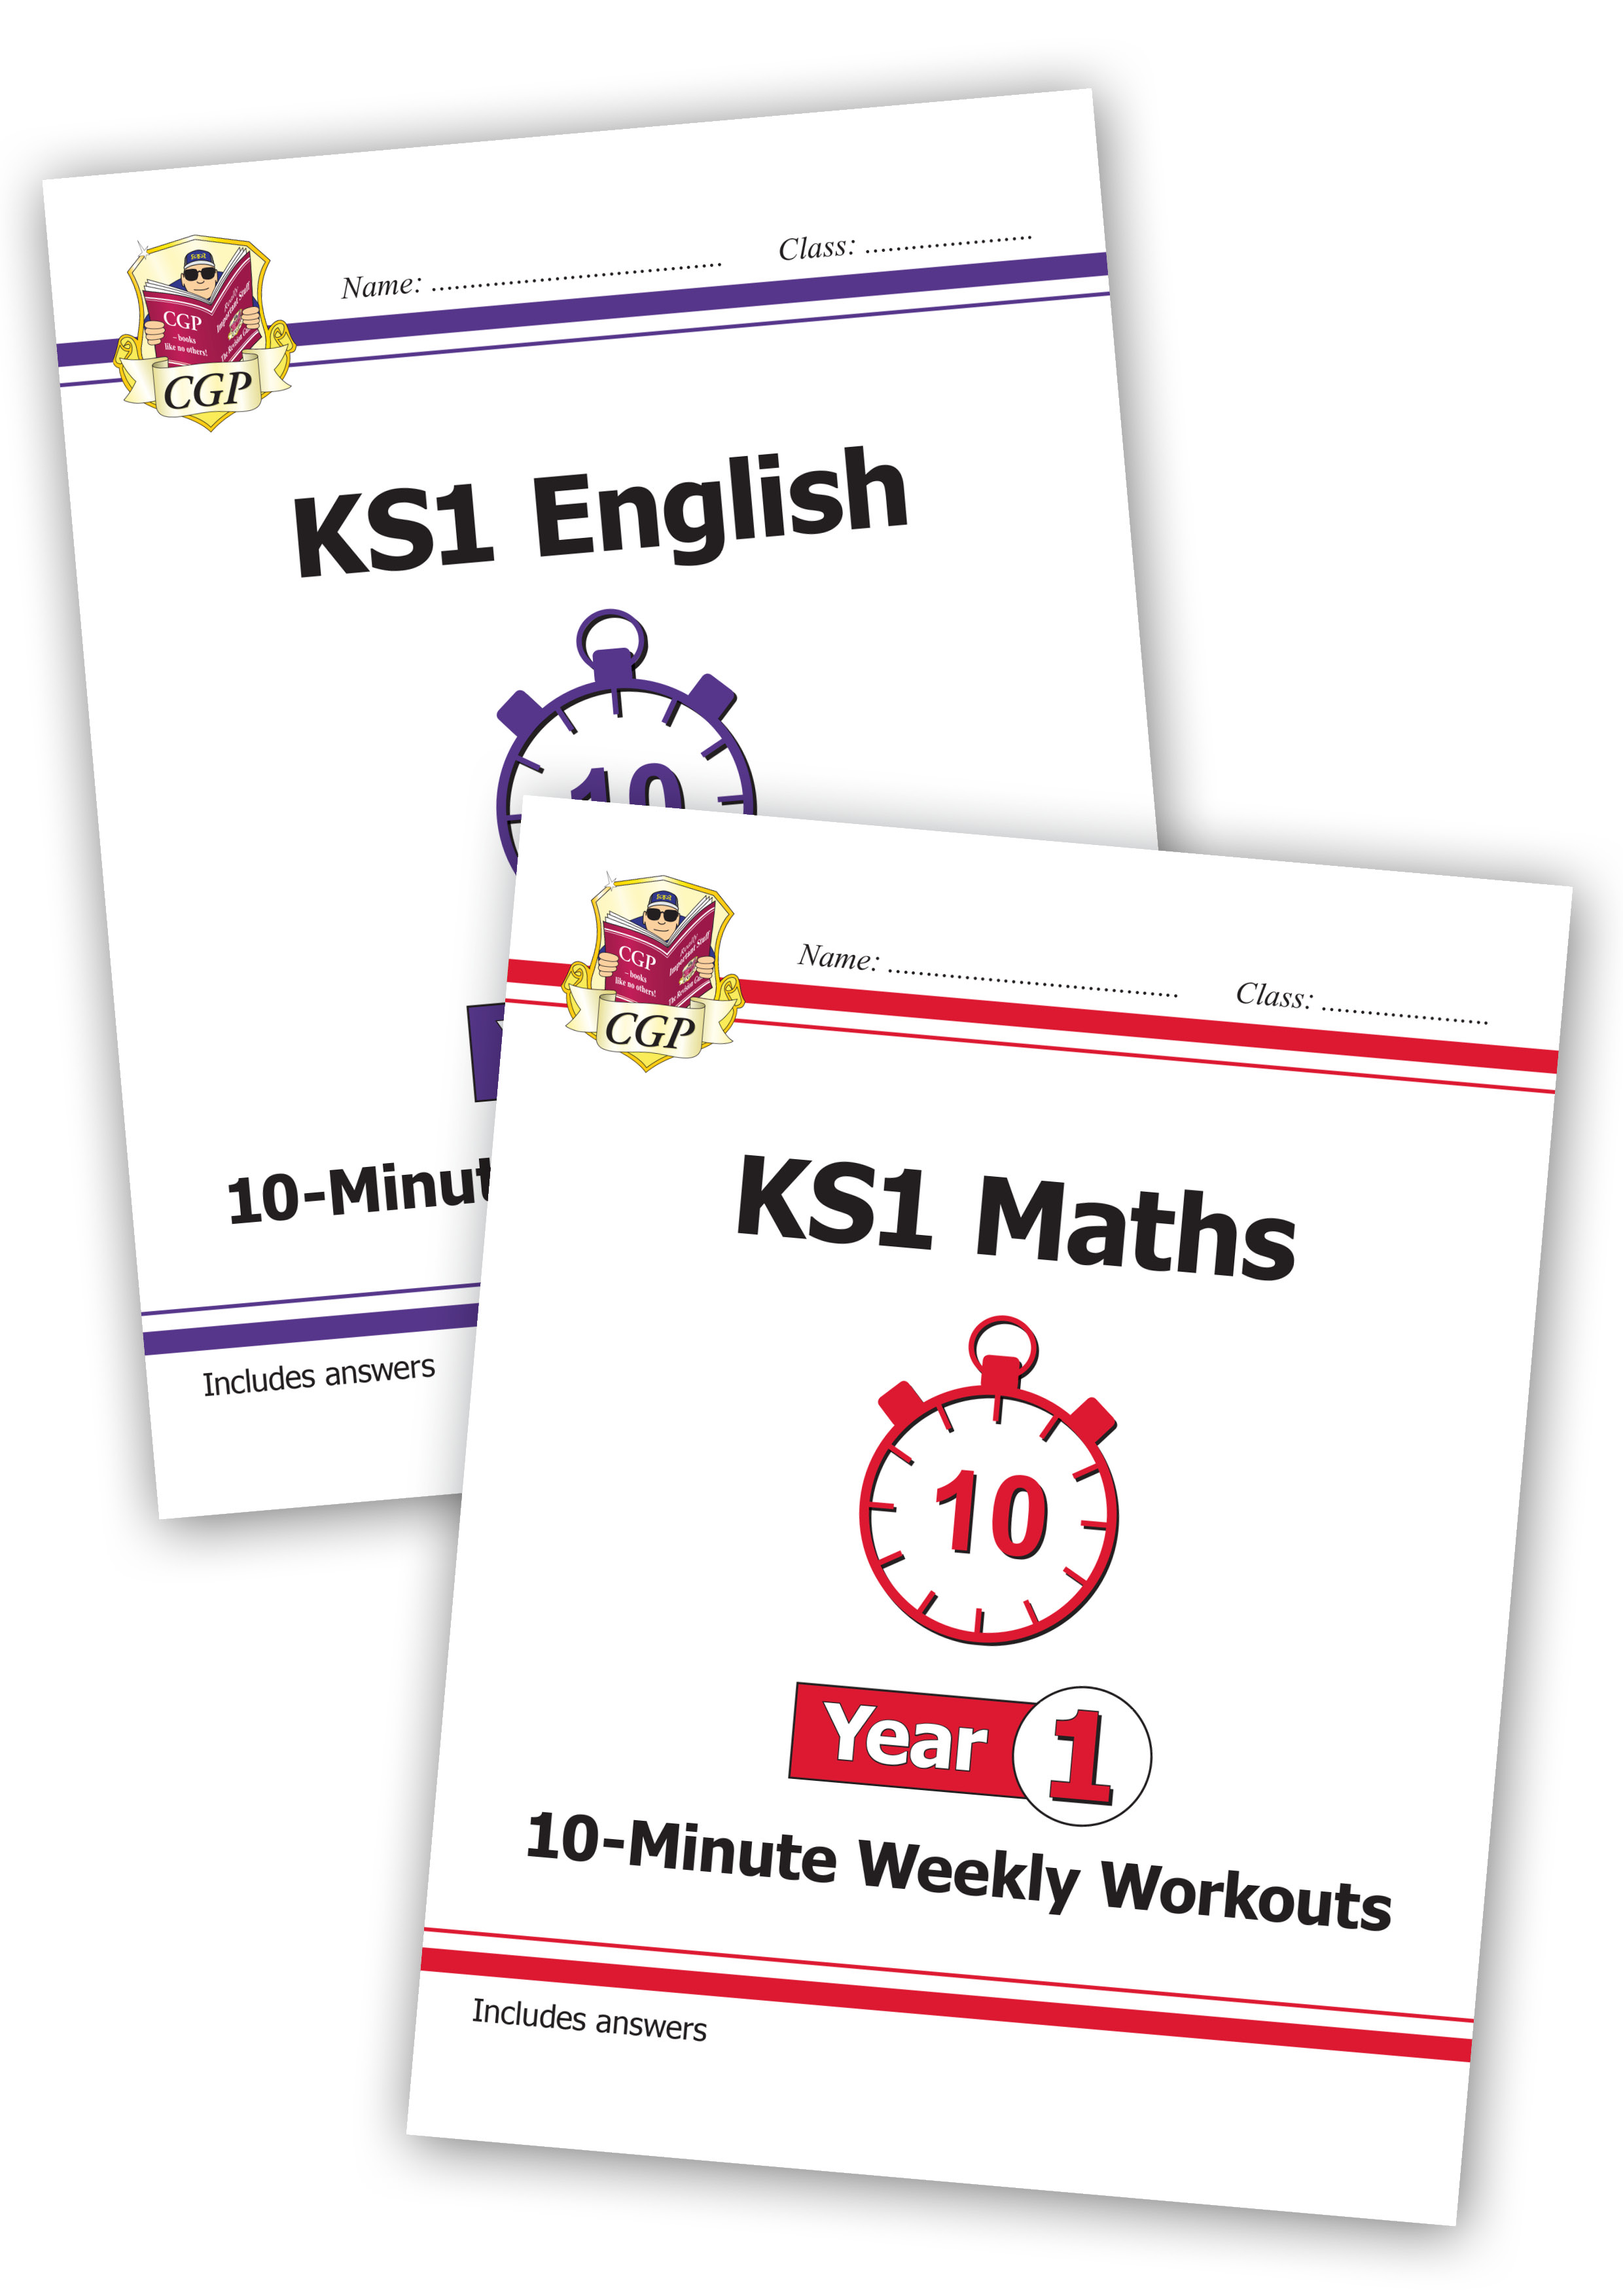 EM1XWB11 - New KS2 Maths and English 10-Minute Weekly Workouts Bundle - Year 1